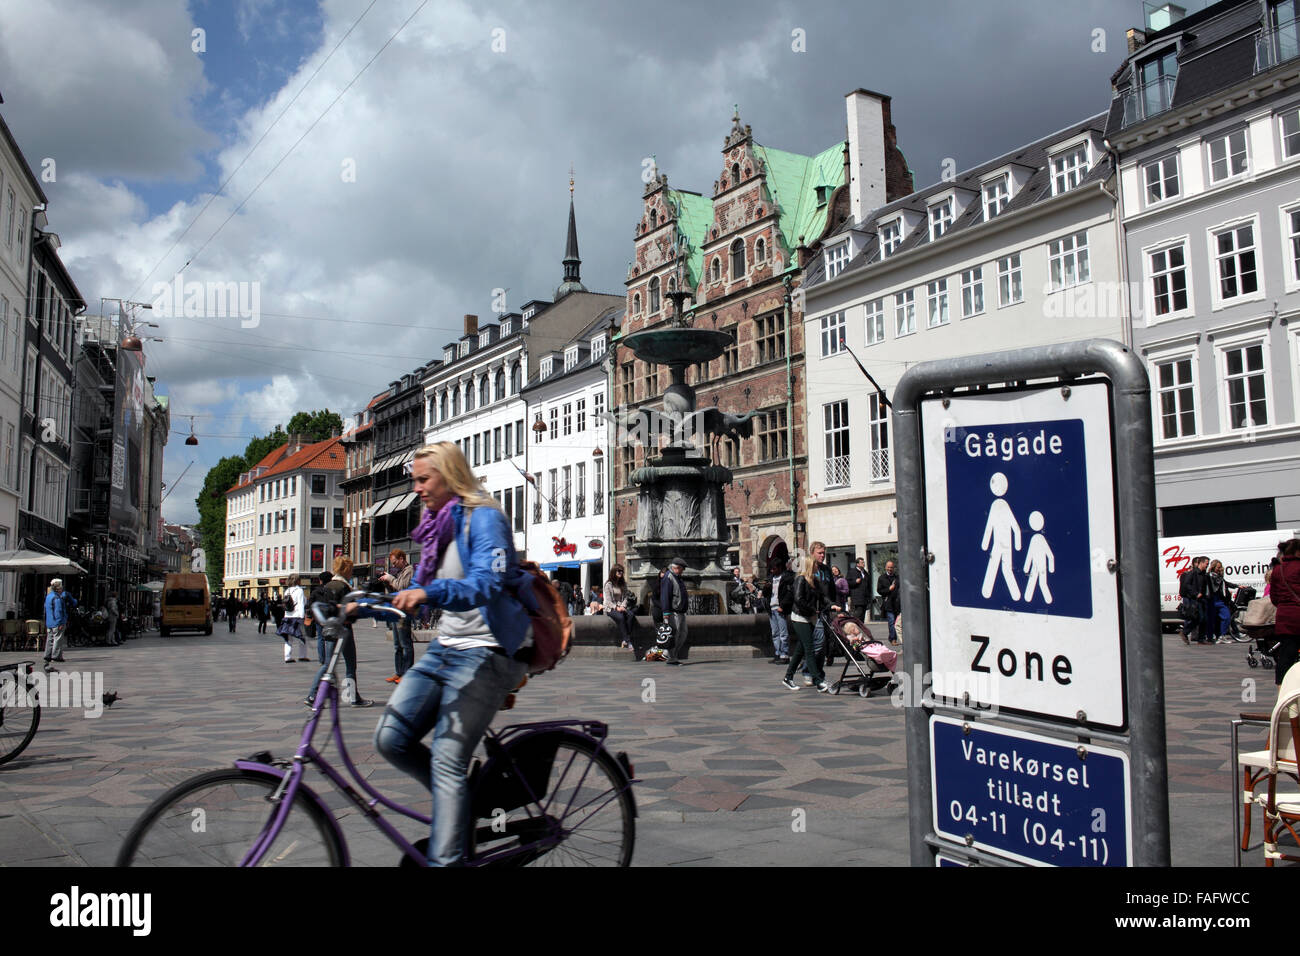 Pedestrian zone and cyclist in Amagertorv in the centre of Copenhagen, Denmark. - Stock Image